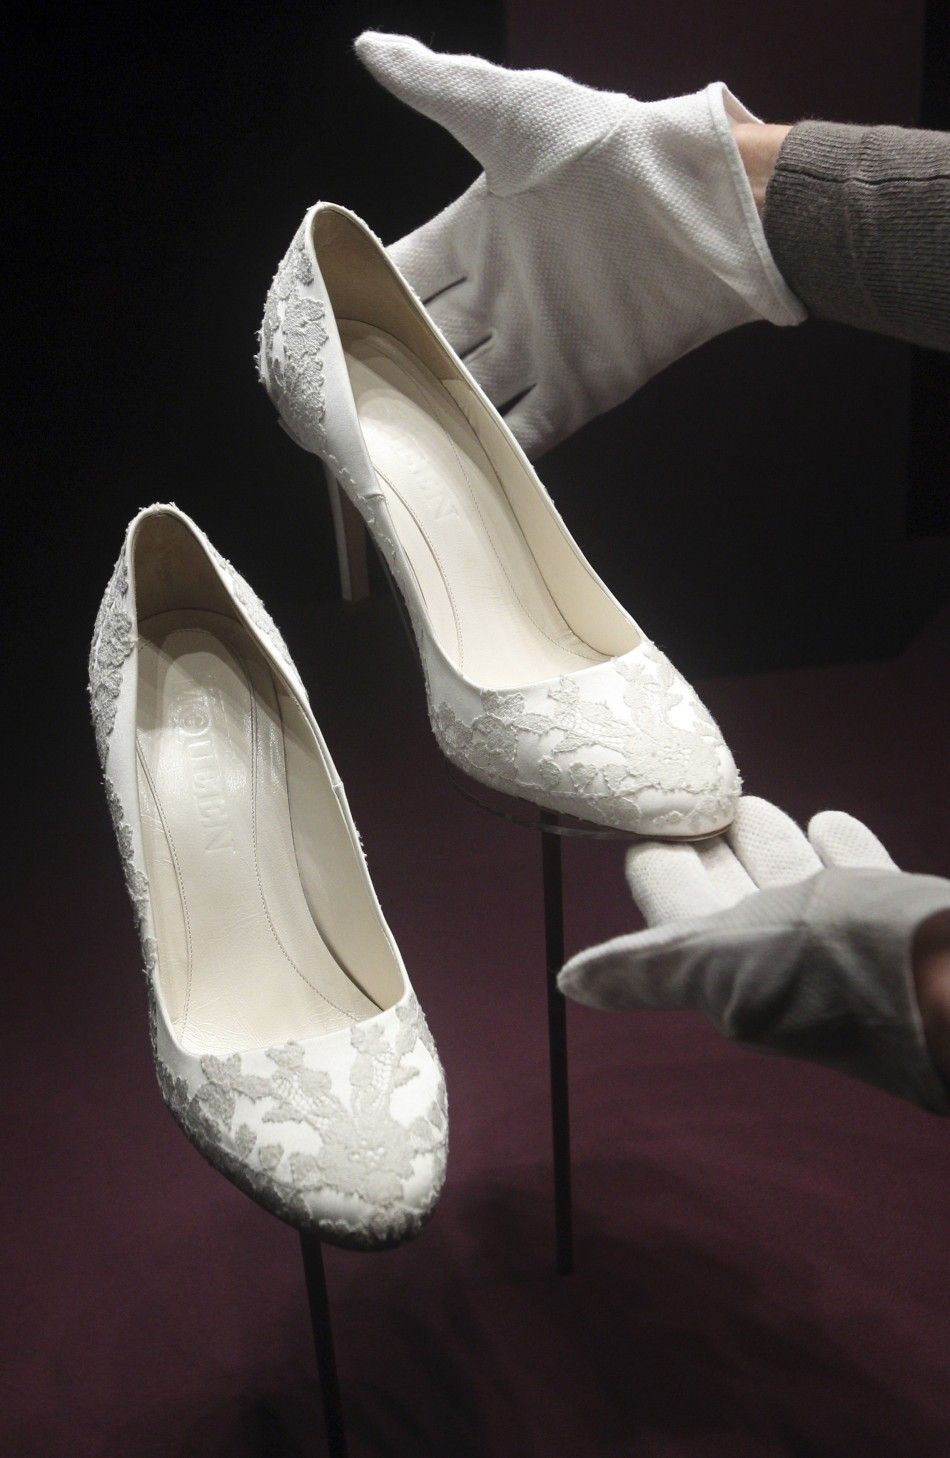 shoes that went with kate s wedding dress kate middleton wedding dress kate middleton wedding kate wedding dress kate middleton wedding dress kate